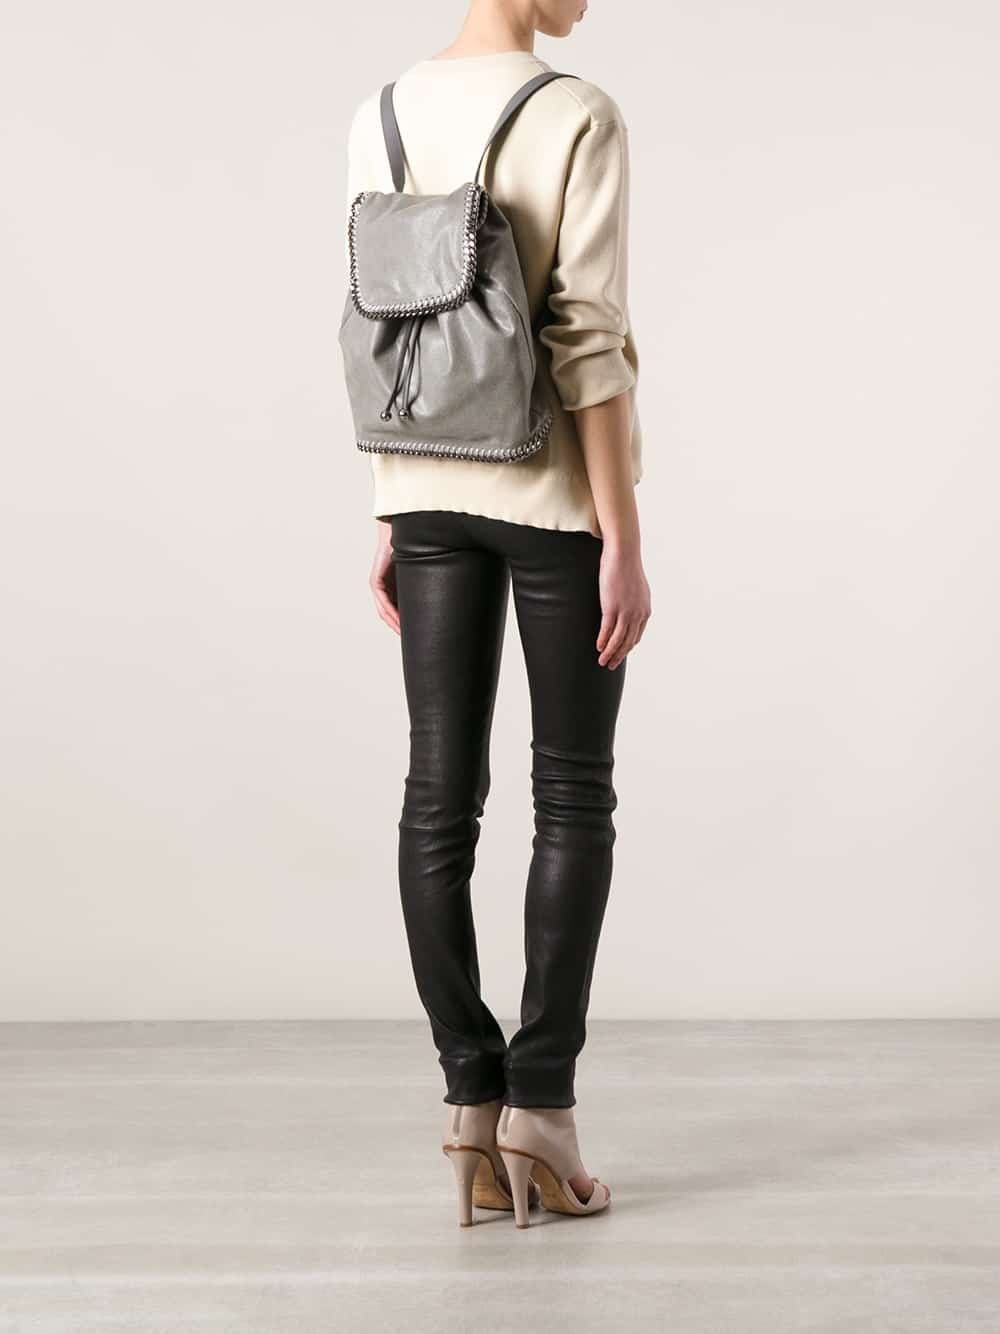 stella mccartney vegan backpack